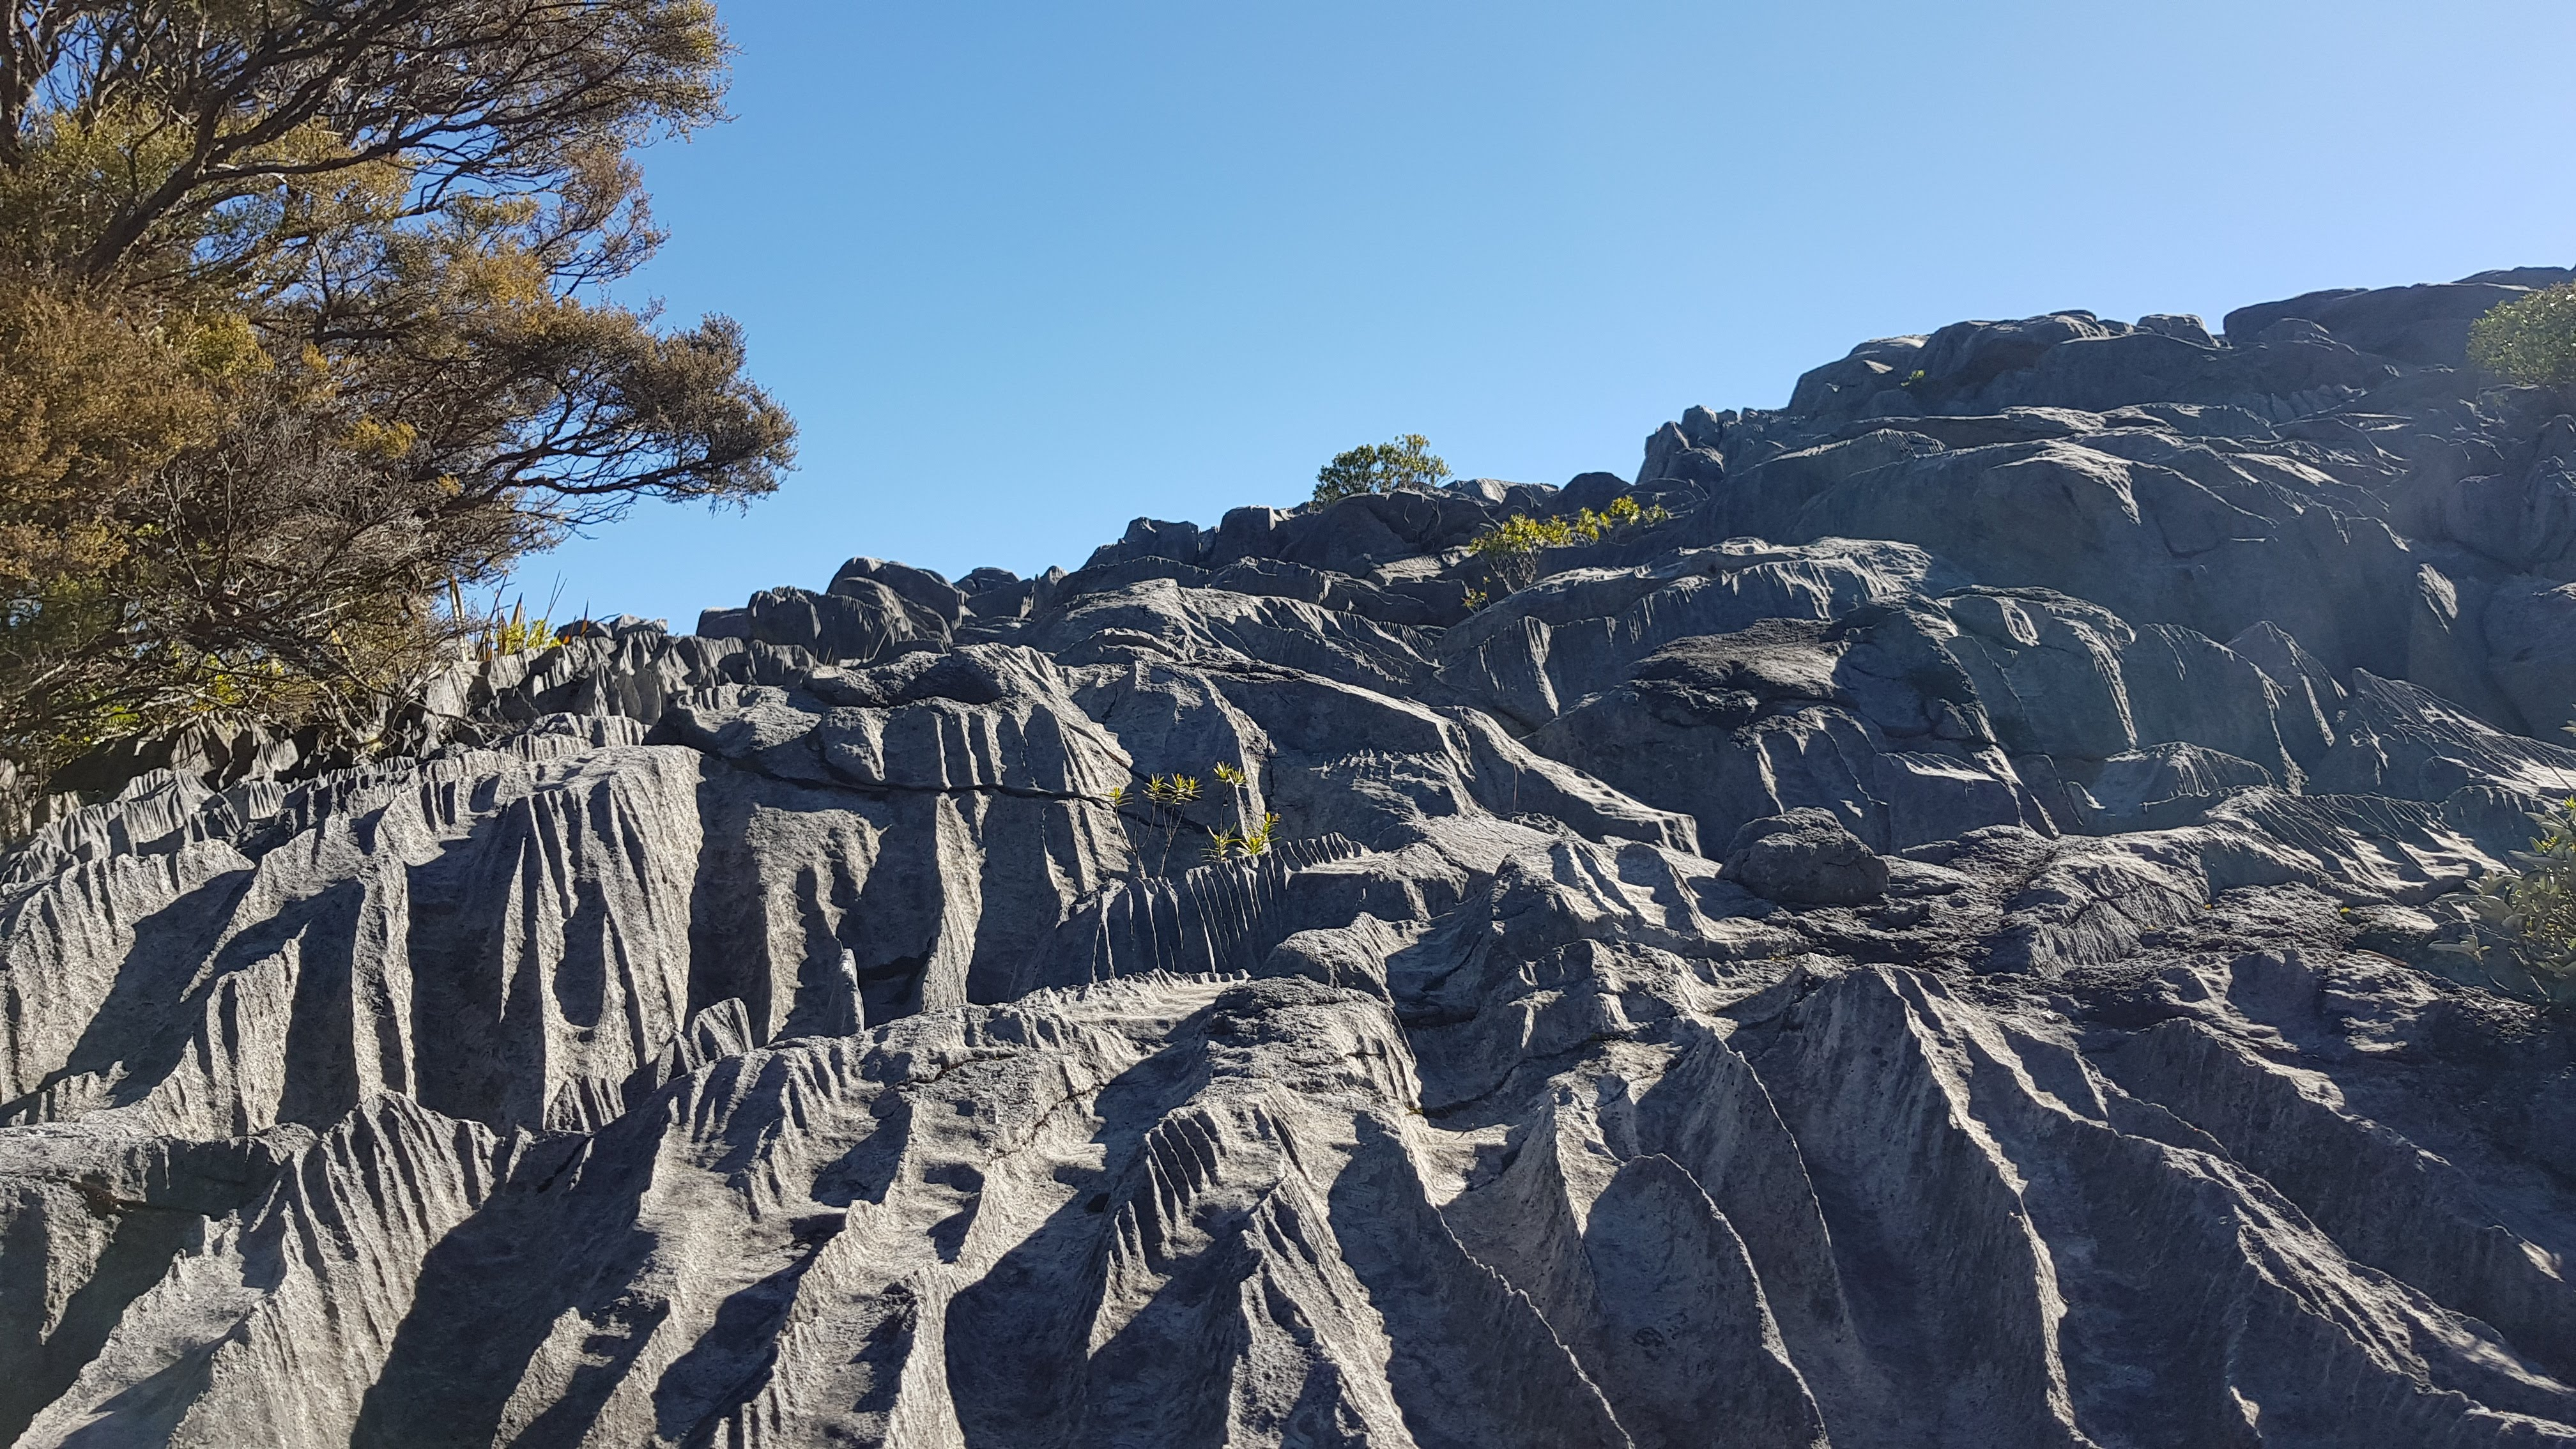 Sharp, fluted limestone rocks on the way up to the Gorge Creek lookout